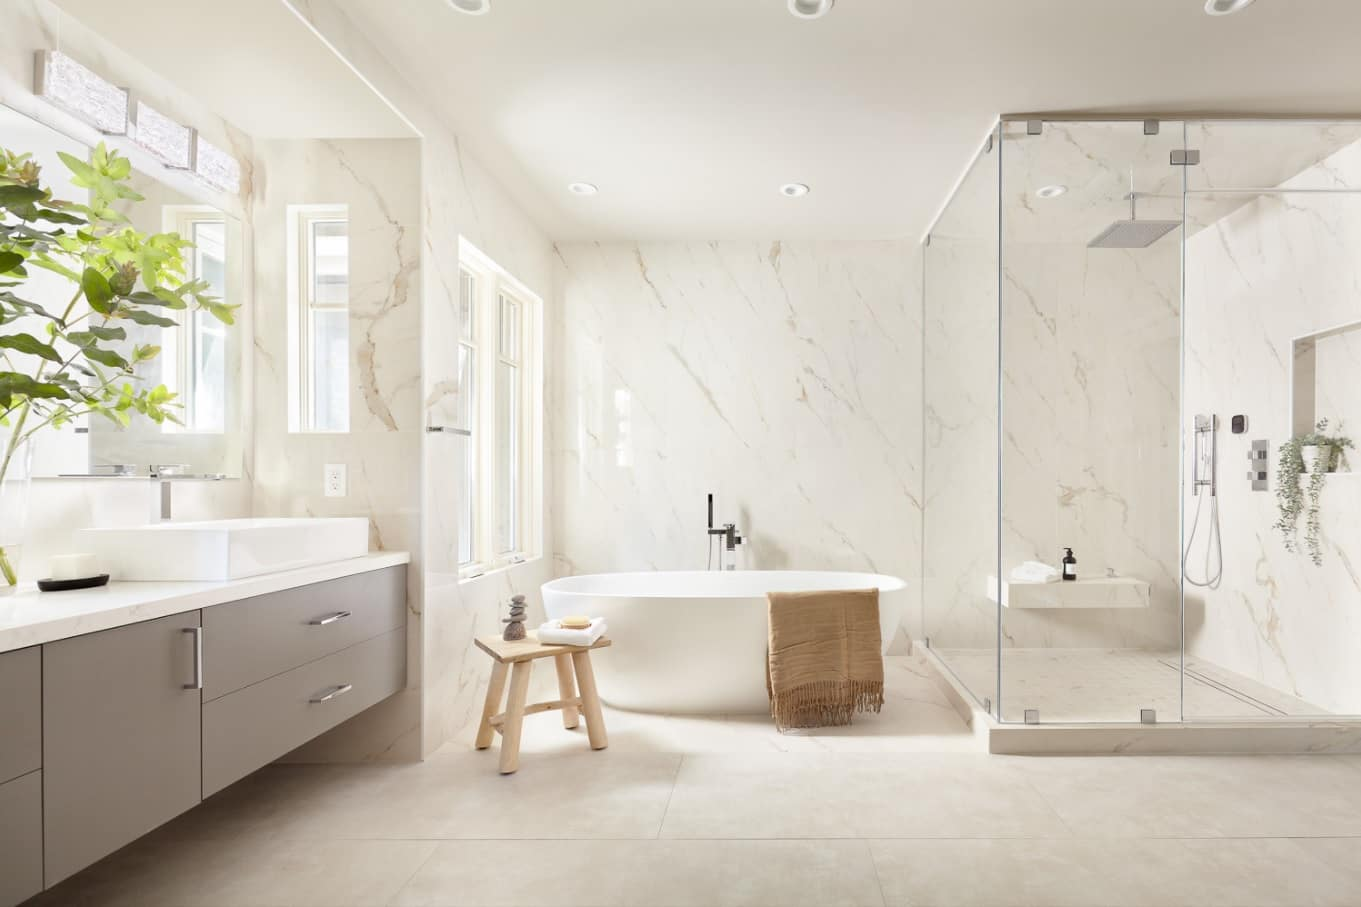 Marble cladded bathroom in Scandinavian style with eggshell bathtub, large classic wooden vanity and glass shower